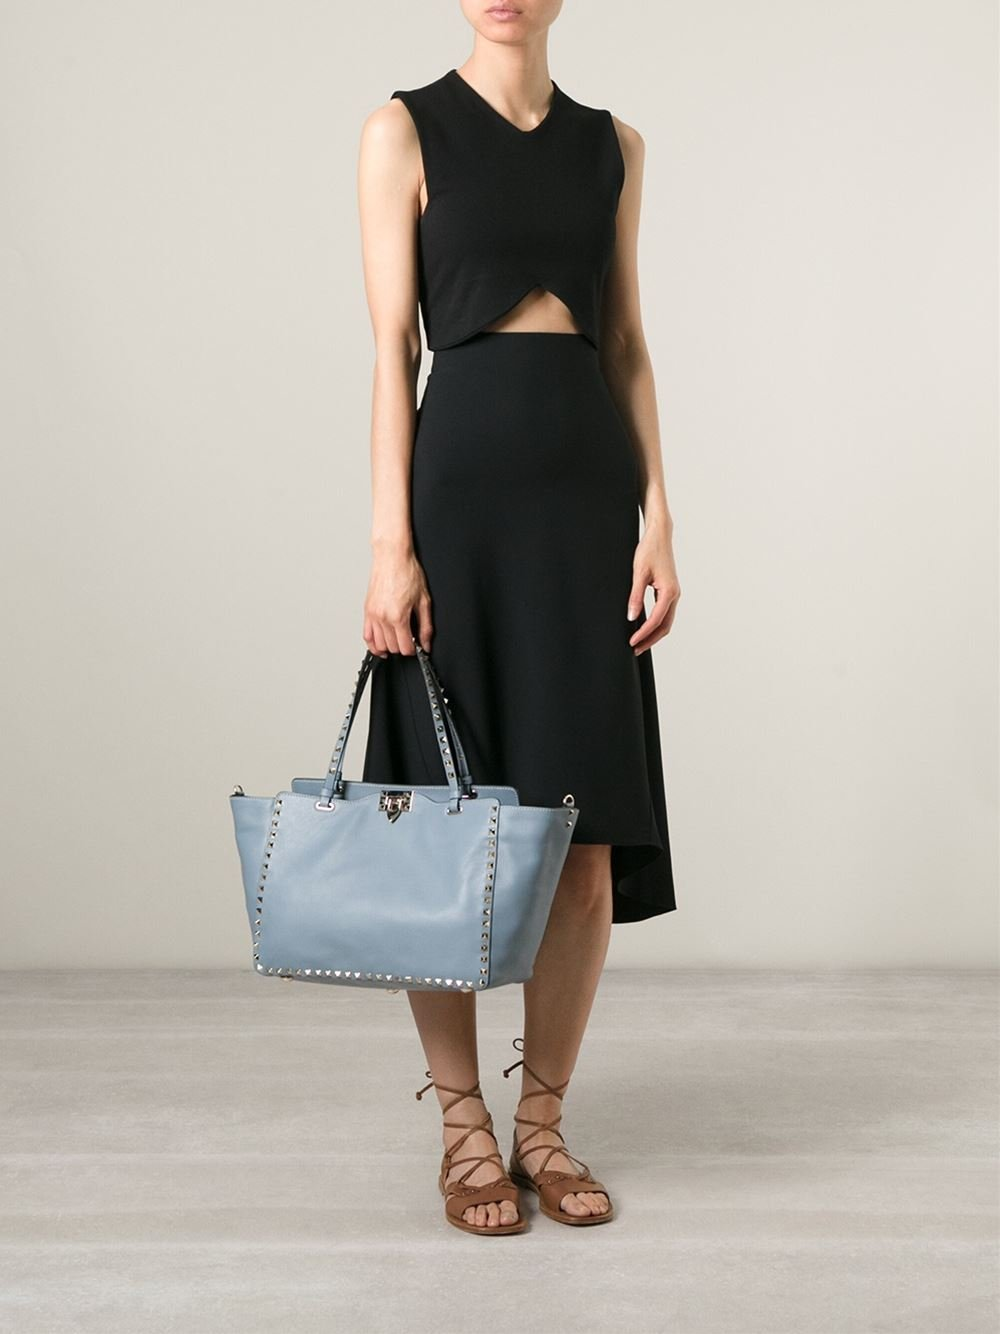 Valentino Garavani Rockstud trapeze tote - Black Valentino Fake For Sale For Sale The Cheapest Visit New Sale Online Clearance Clearance Affordable Online ETbB5TP